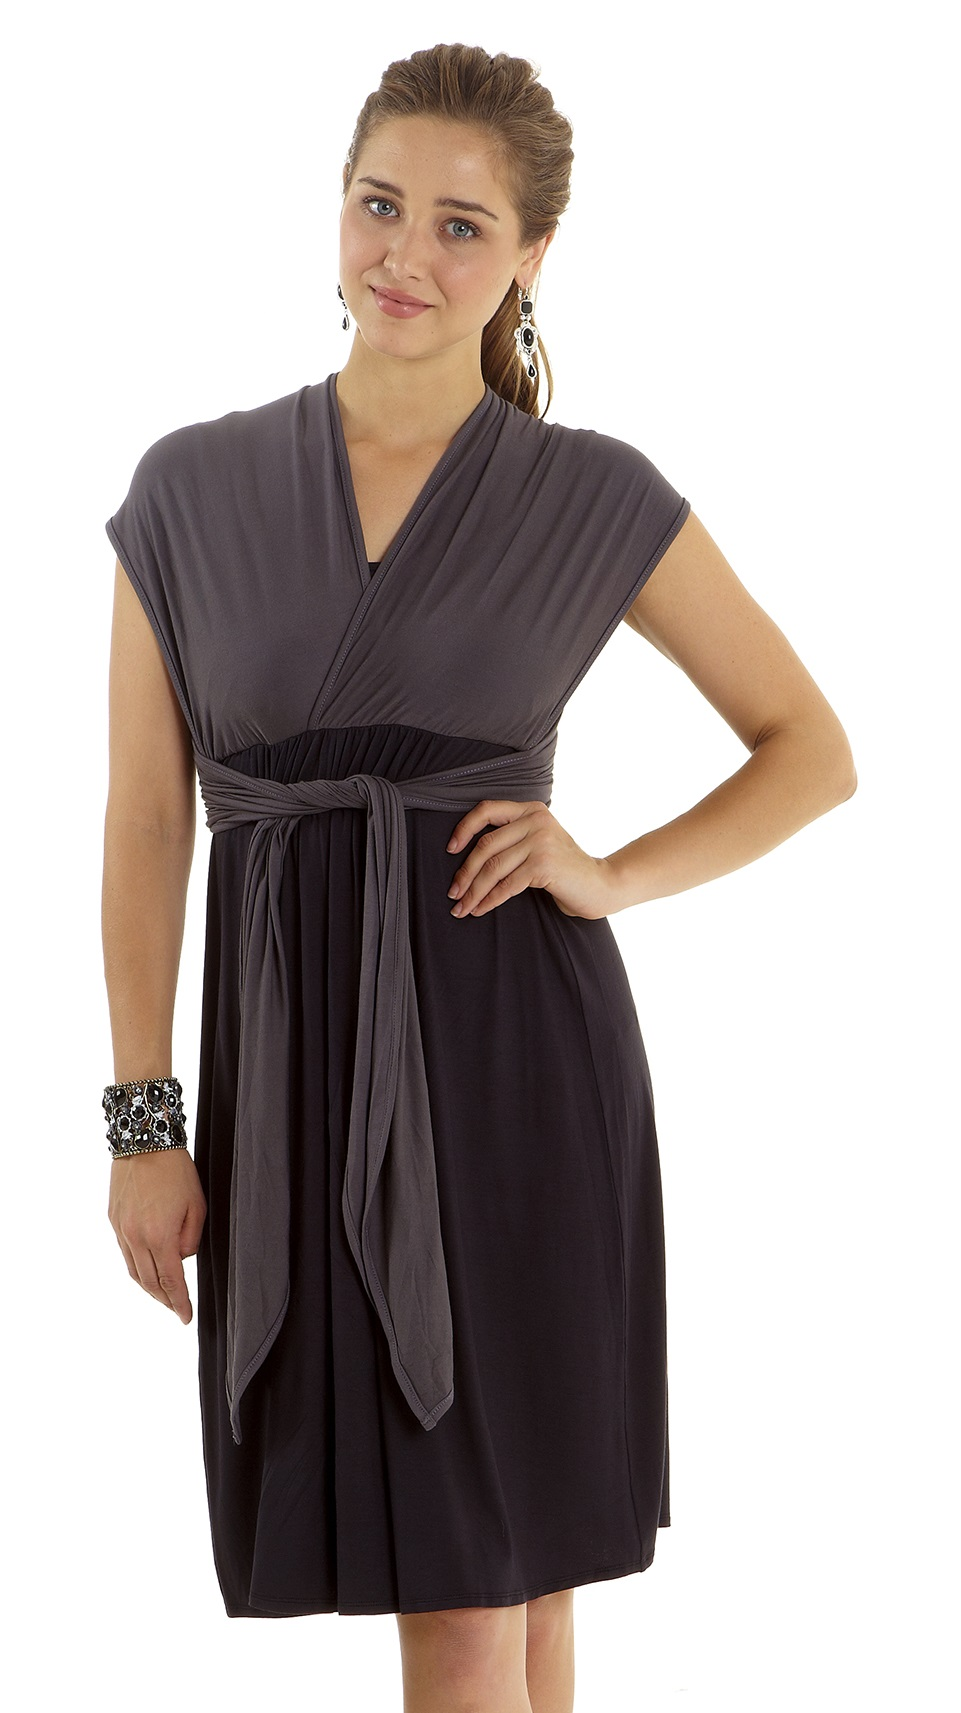 mothers-en-vogue-infinity-wrap-nursing-dress-1-close.jpg